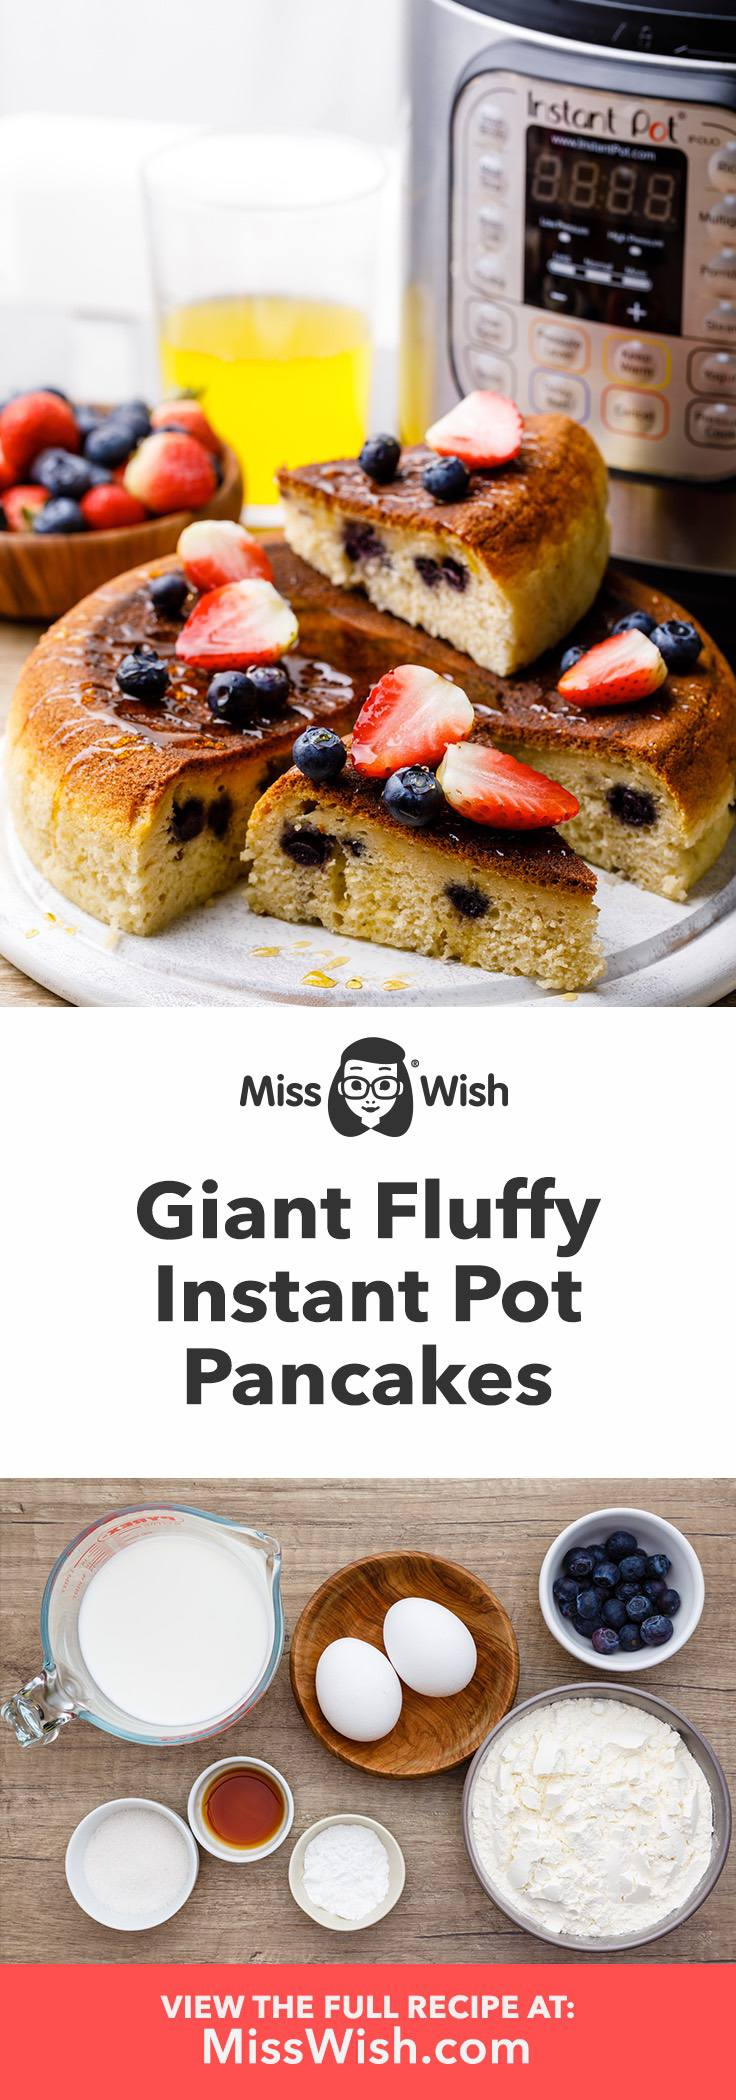 Giant Fluffy Instant Pot Blueberry Pancakes